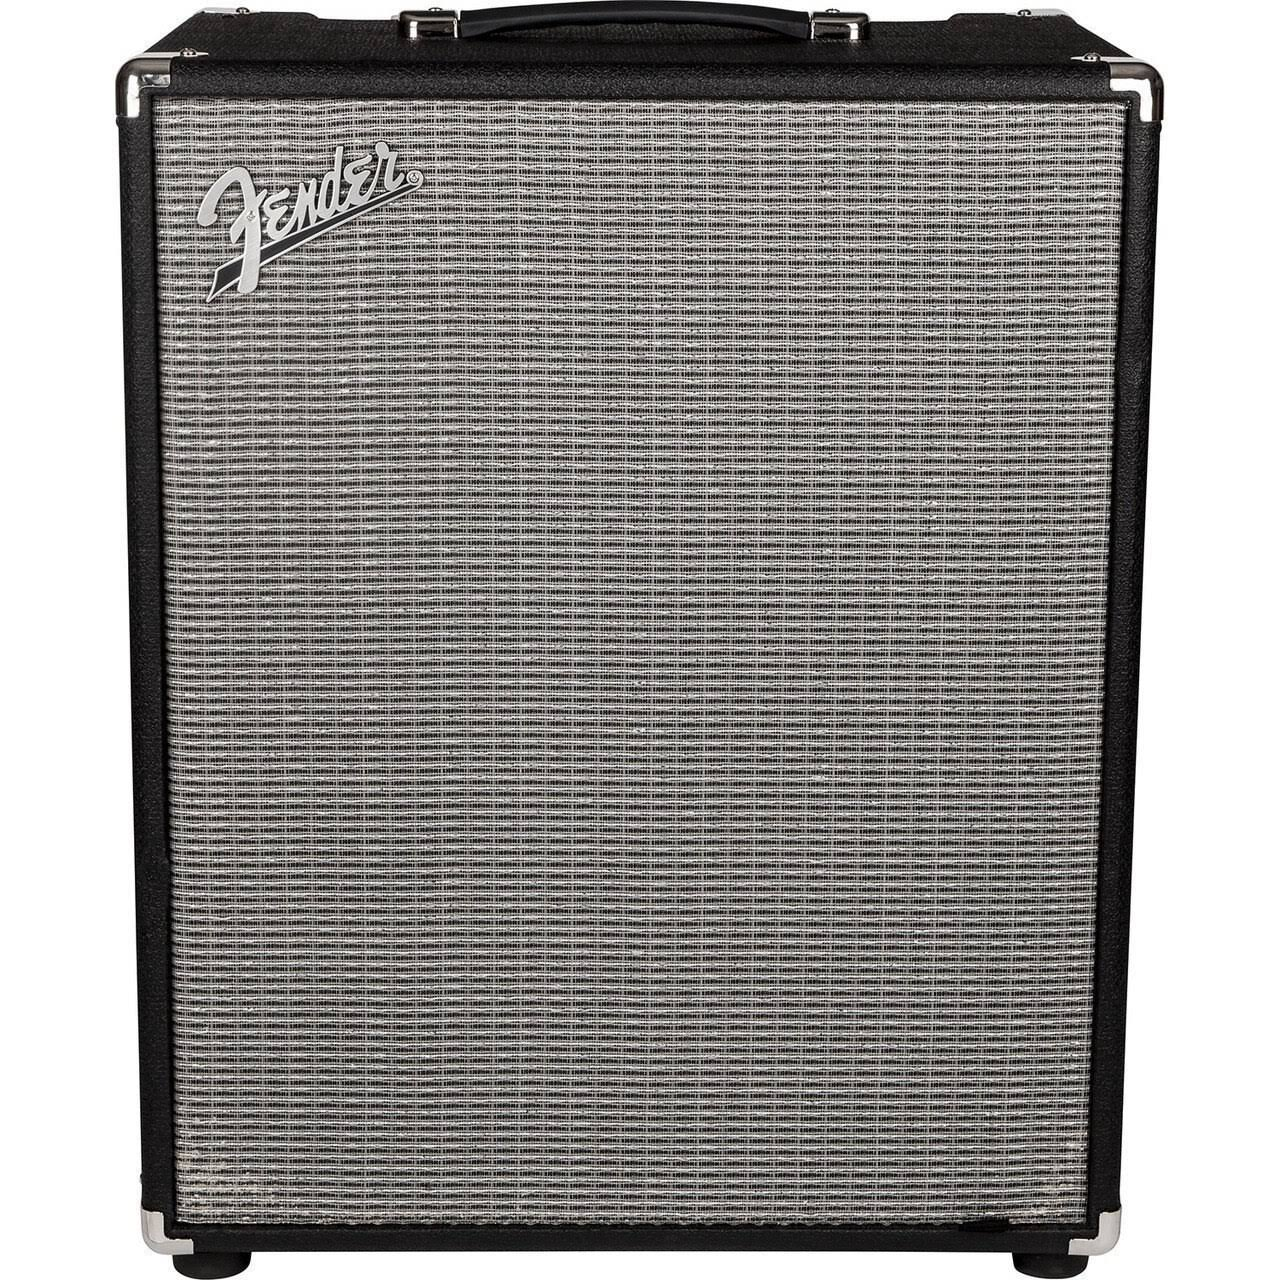 Fender Rumble v3 Bass Combo Amplifier - 500w